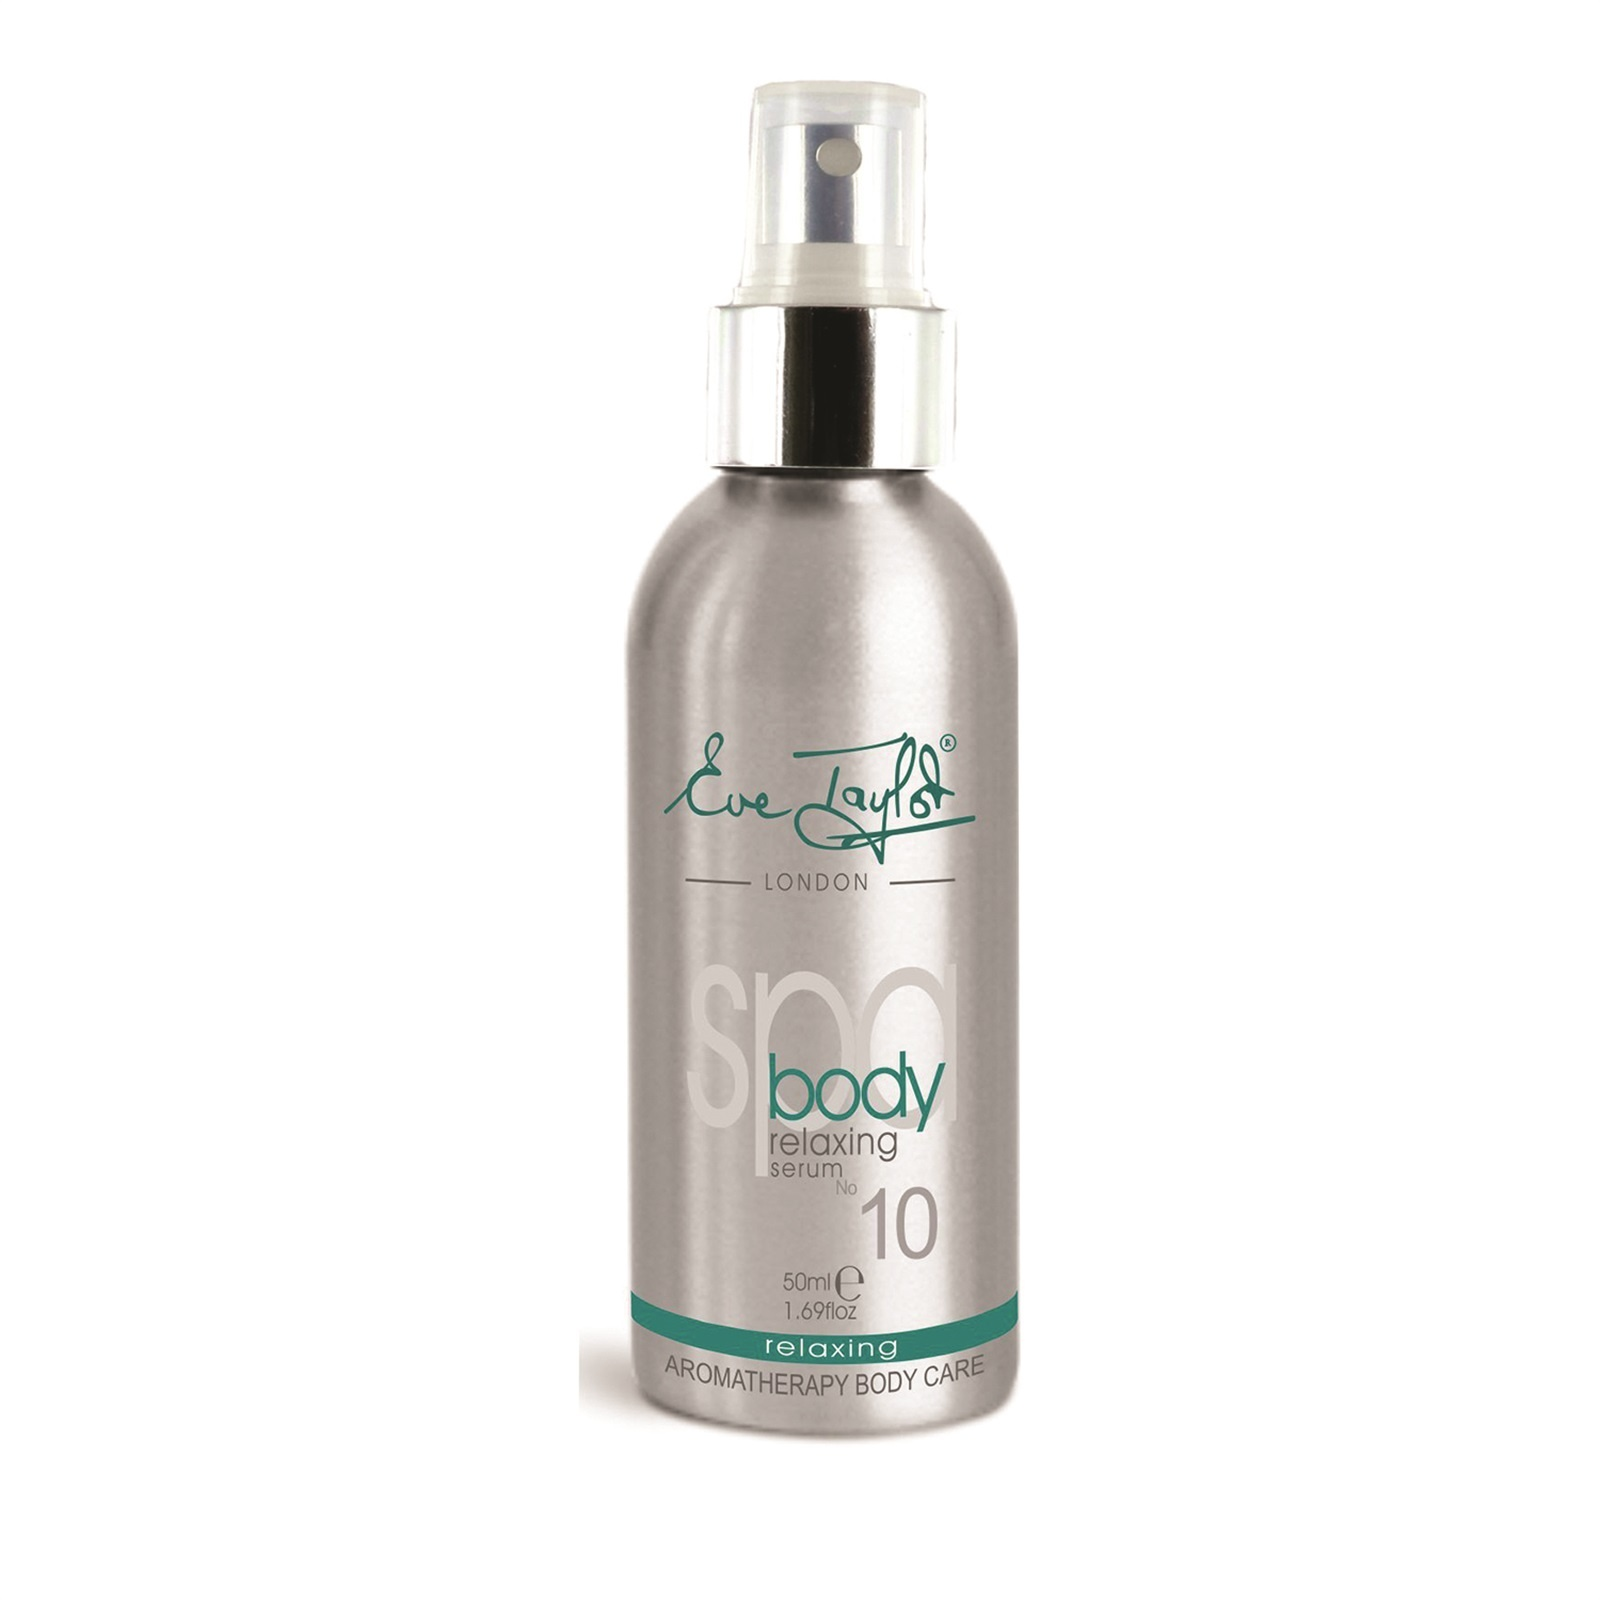 Eve Taylor Relaxing Body Serum